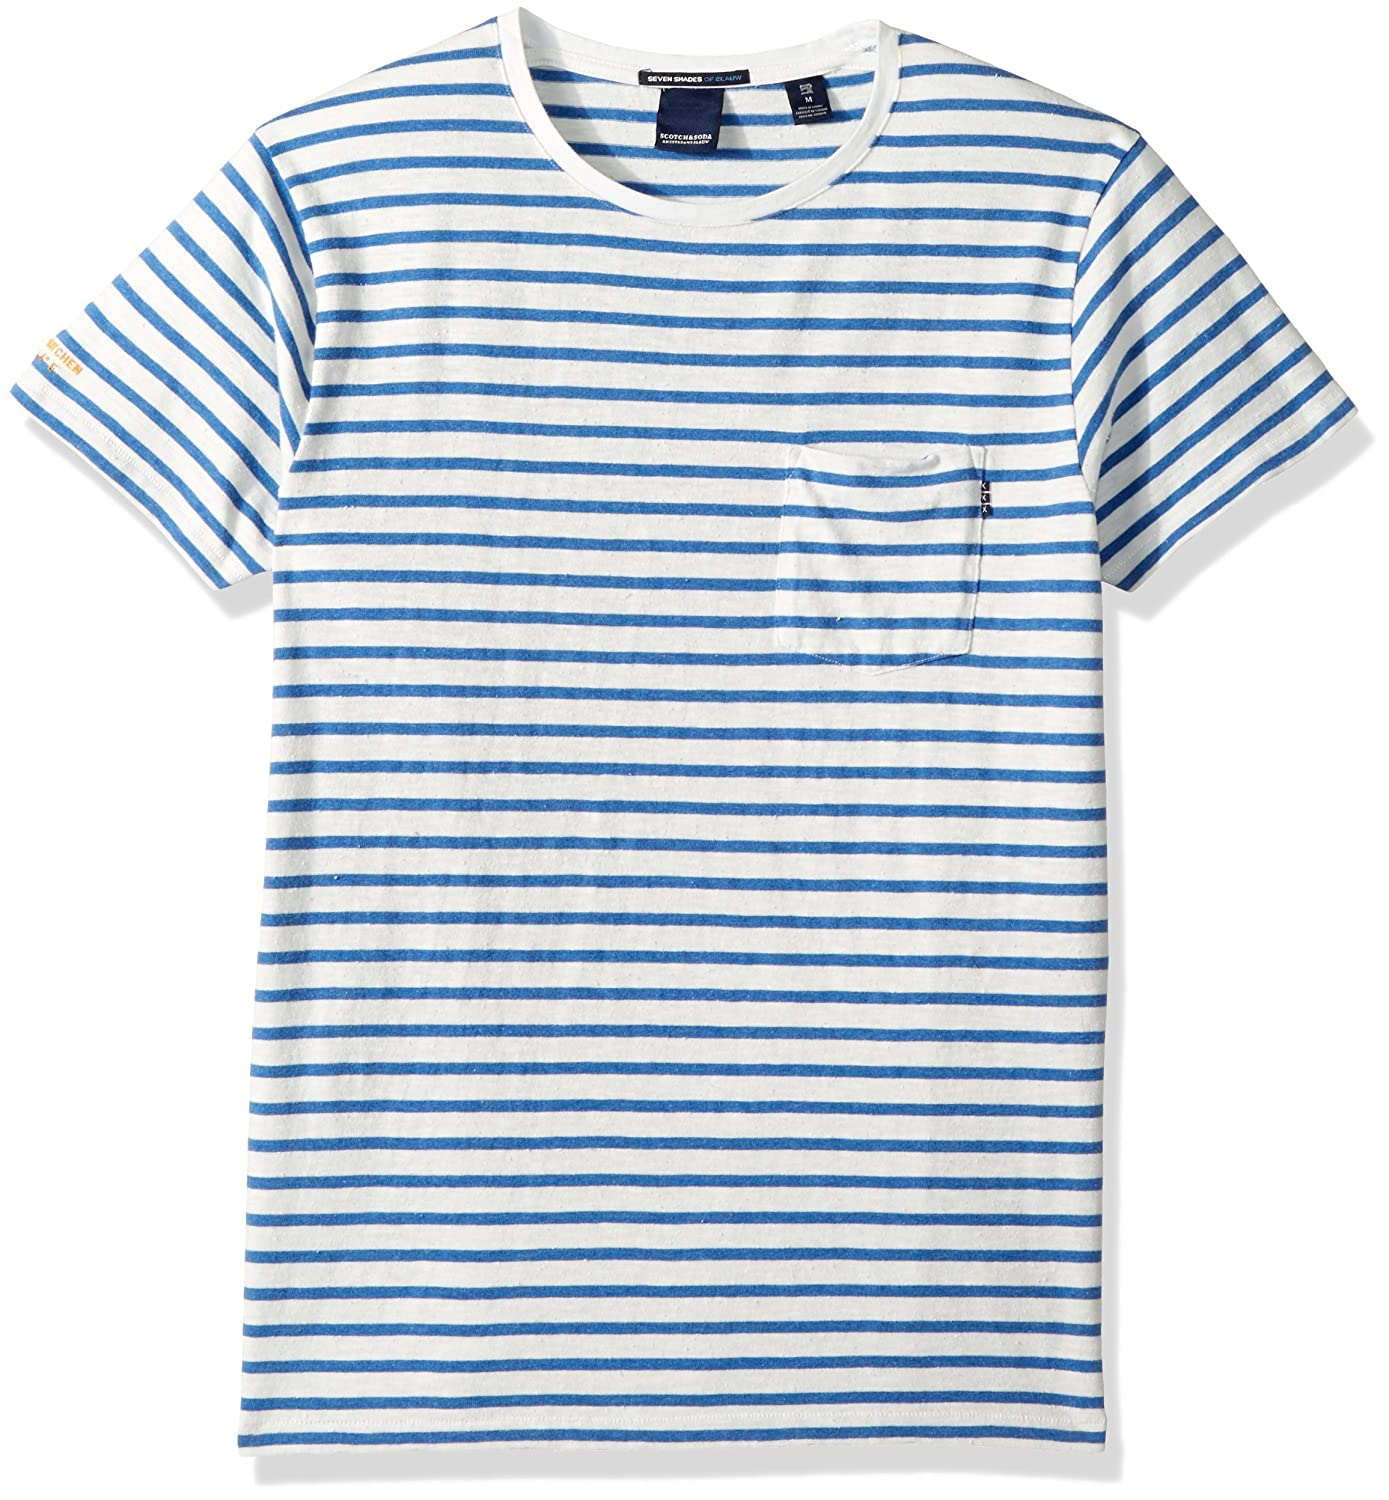 Scotch & Soda Men's AMS Blauw 1 Pocket Regular fit Colourot Striped tee, Combo el, XXL